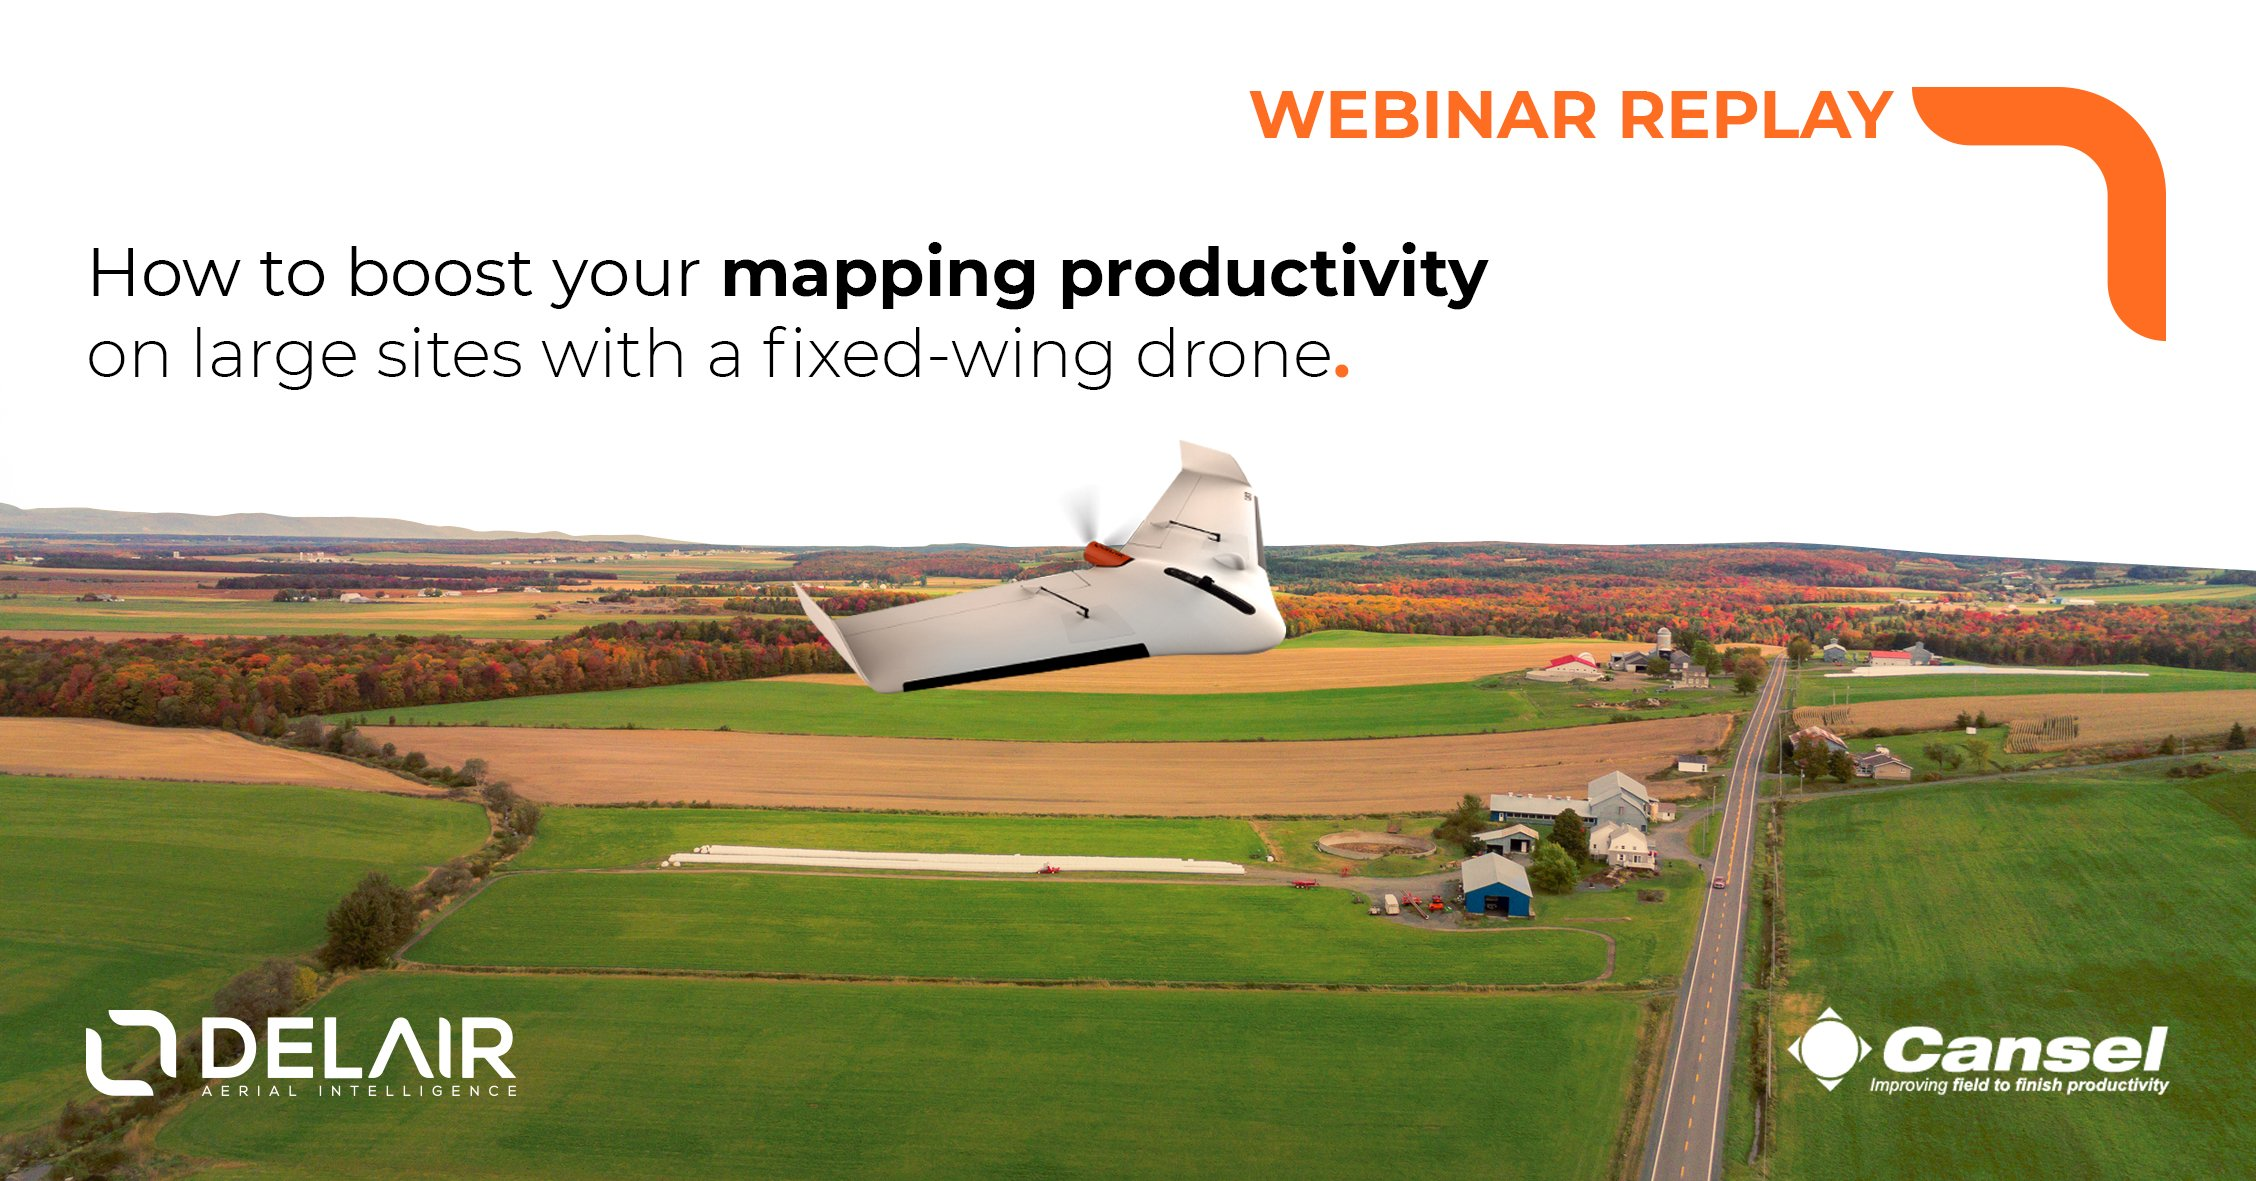 Boost your productivity by mapping large sites with a fixed-wing drone - Webinar with Cansel (replay)